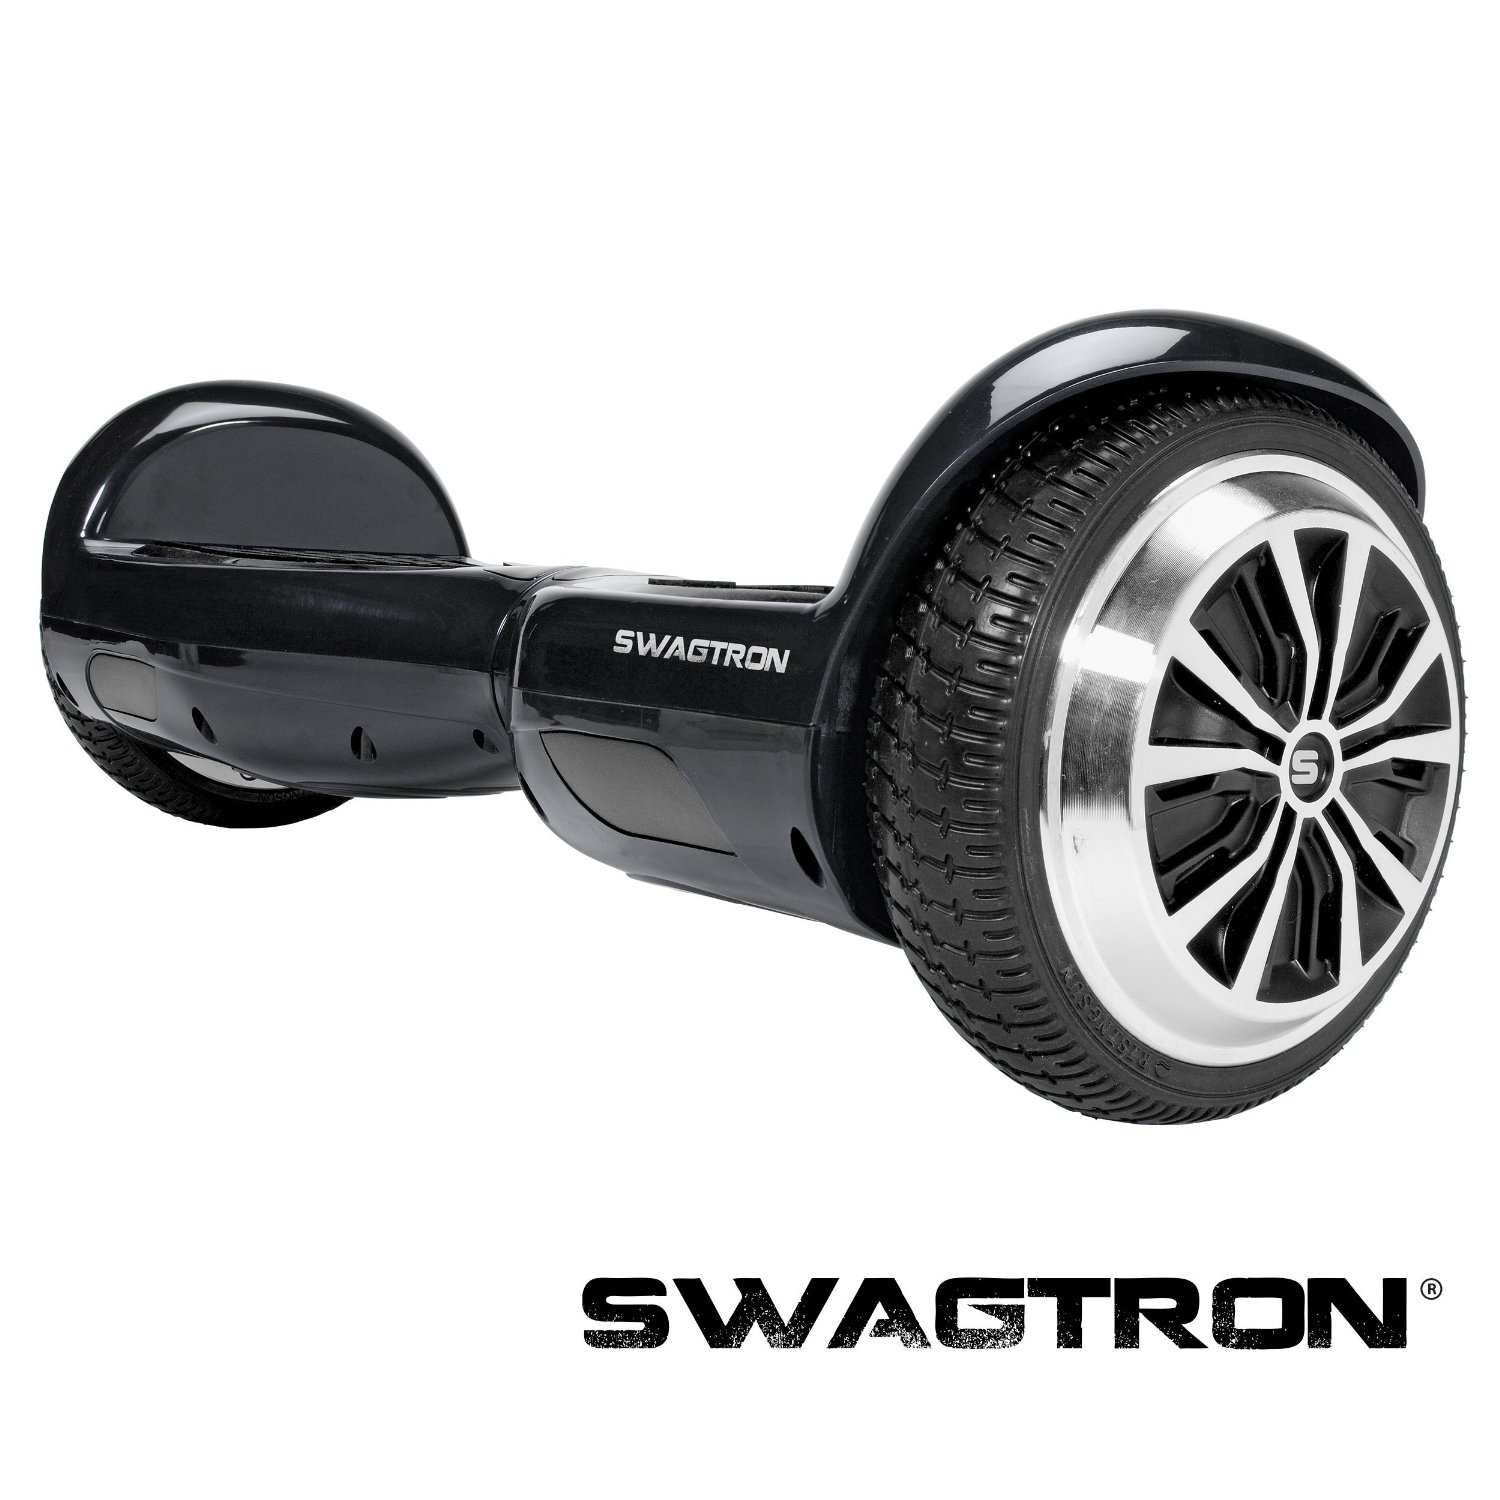 Top 4 Best Hoverboards in 2020 Review – Buyer's Guide